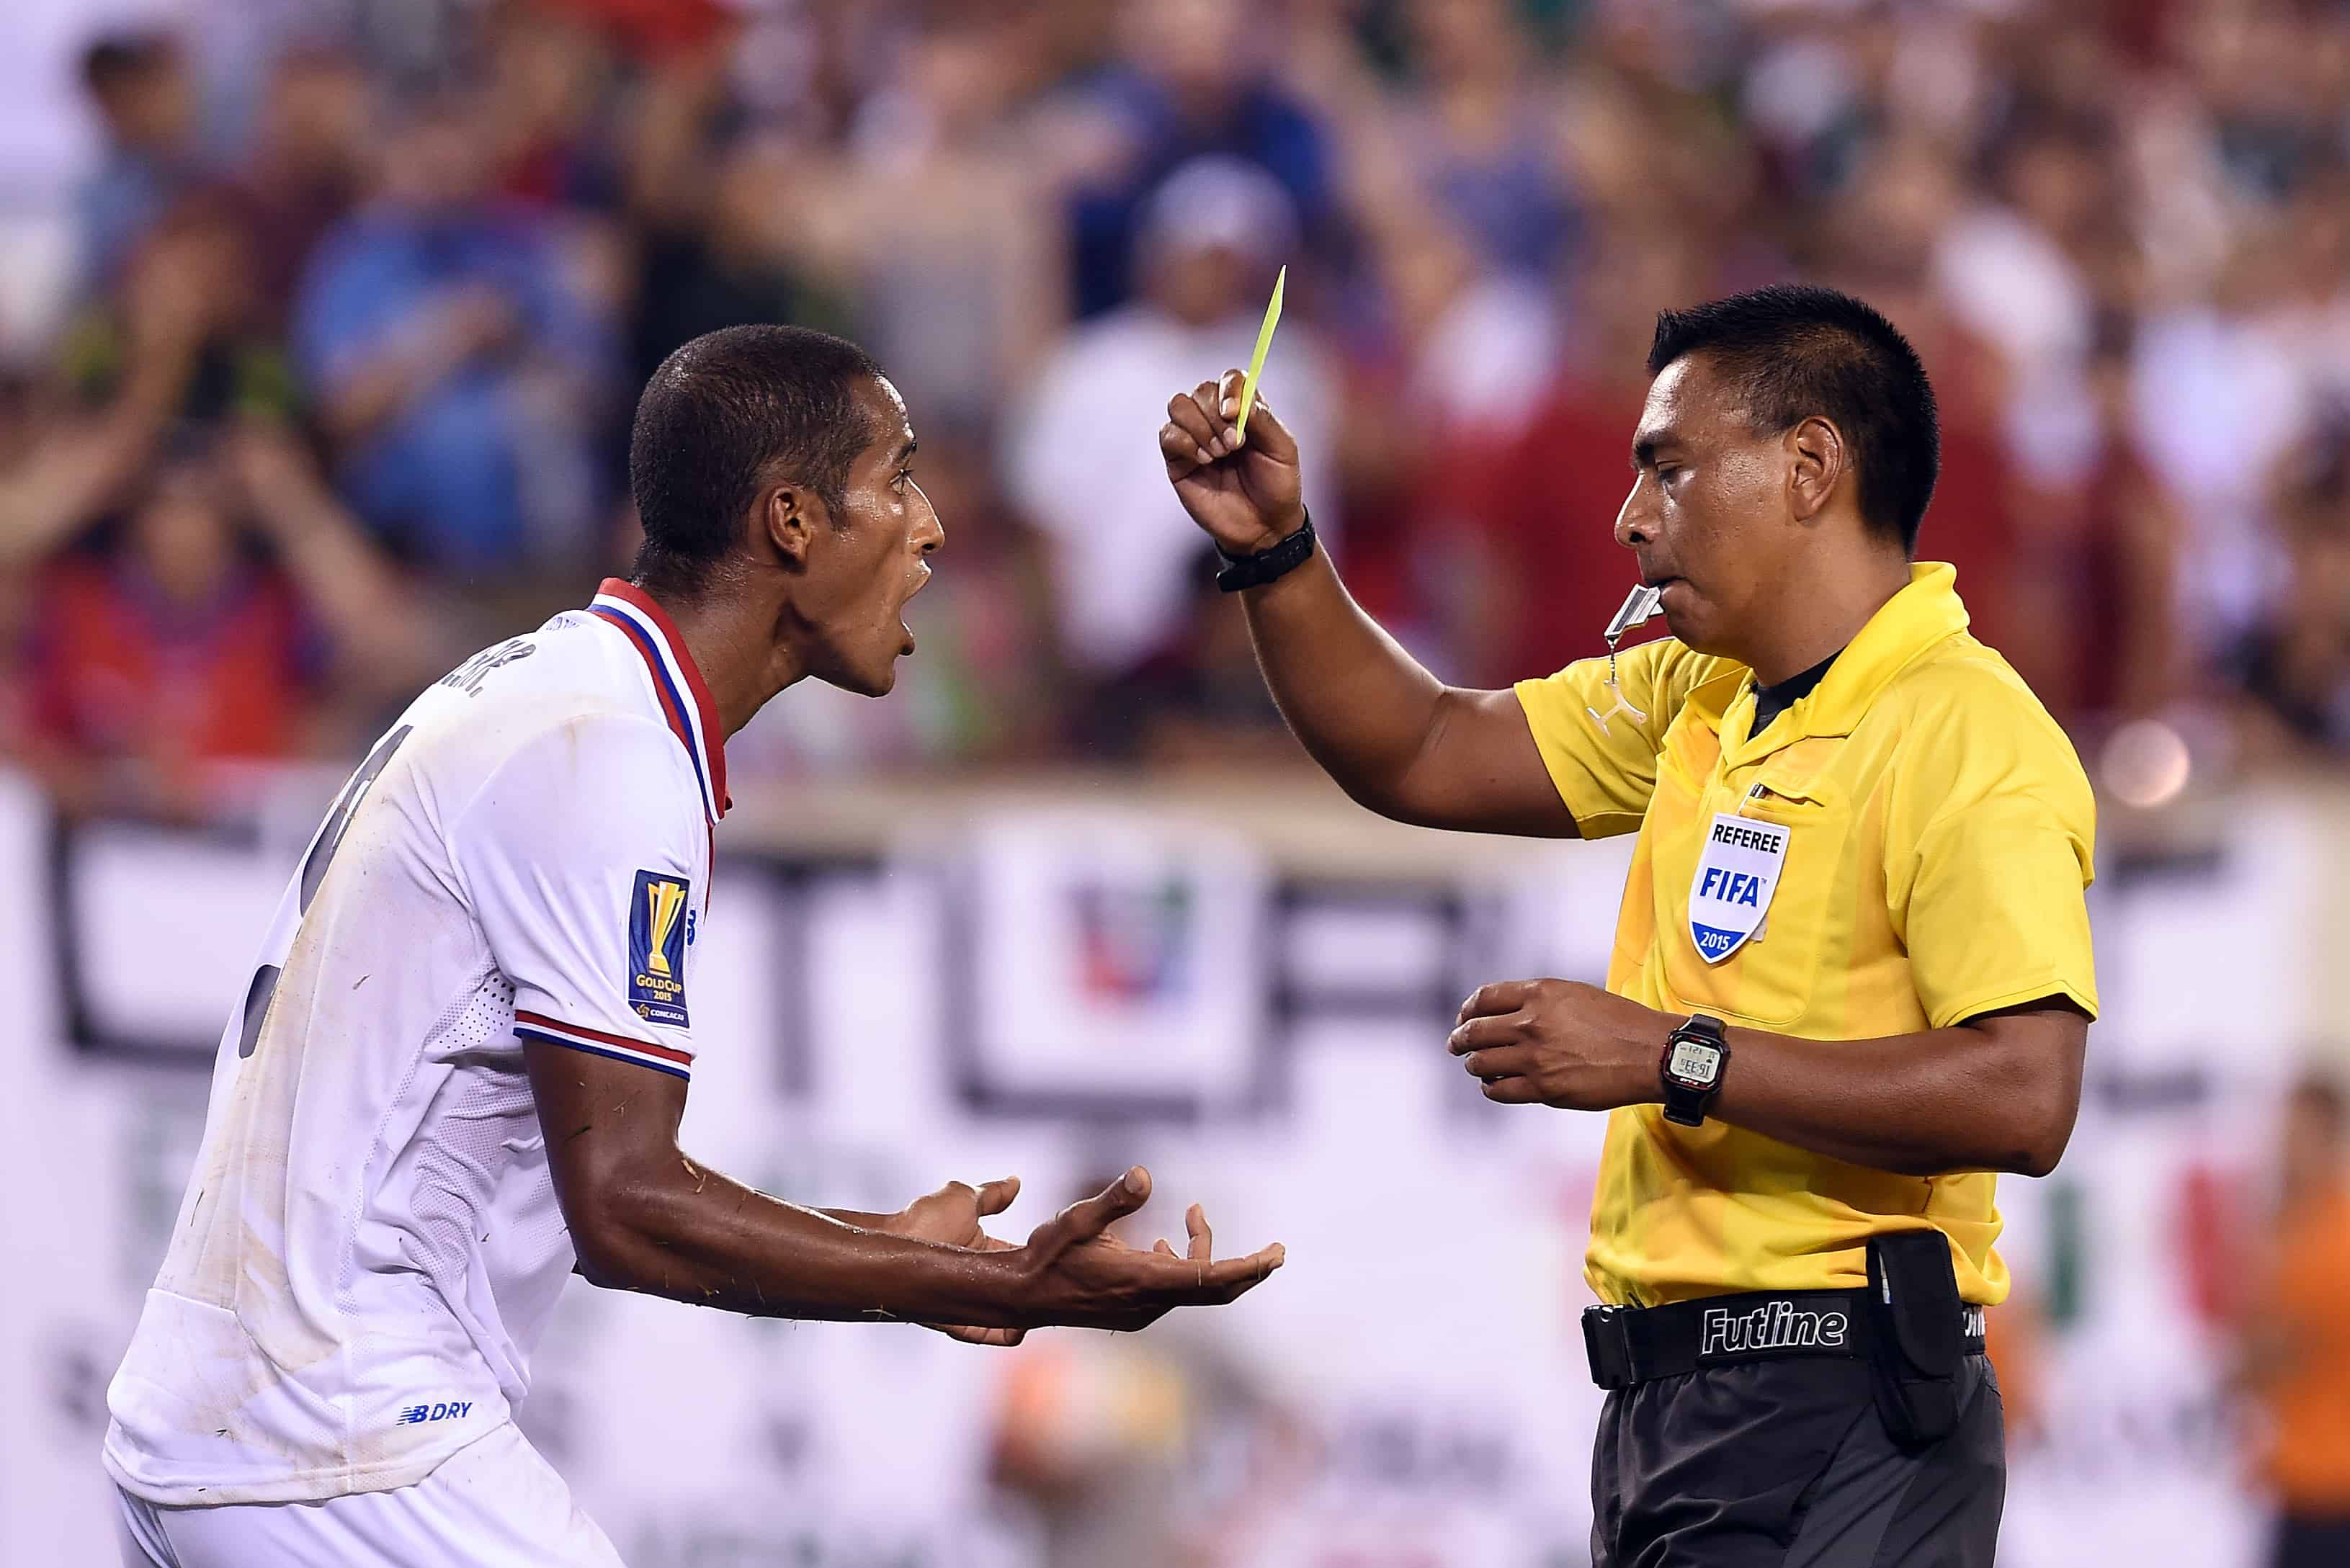 Costa Rica's defender Roy Miller (L) is given a yellow card by the referee during the CONCACAF Gold Cup quarterfinals soccer match against Mexico at the MetLife Stadium in East Rutherford, New Jersey, on July 19, 2015.